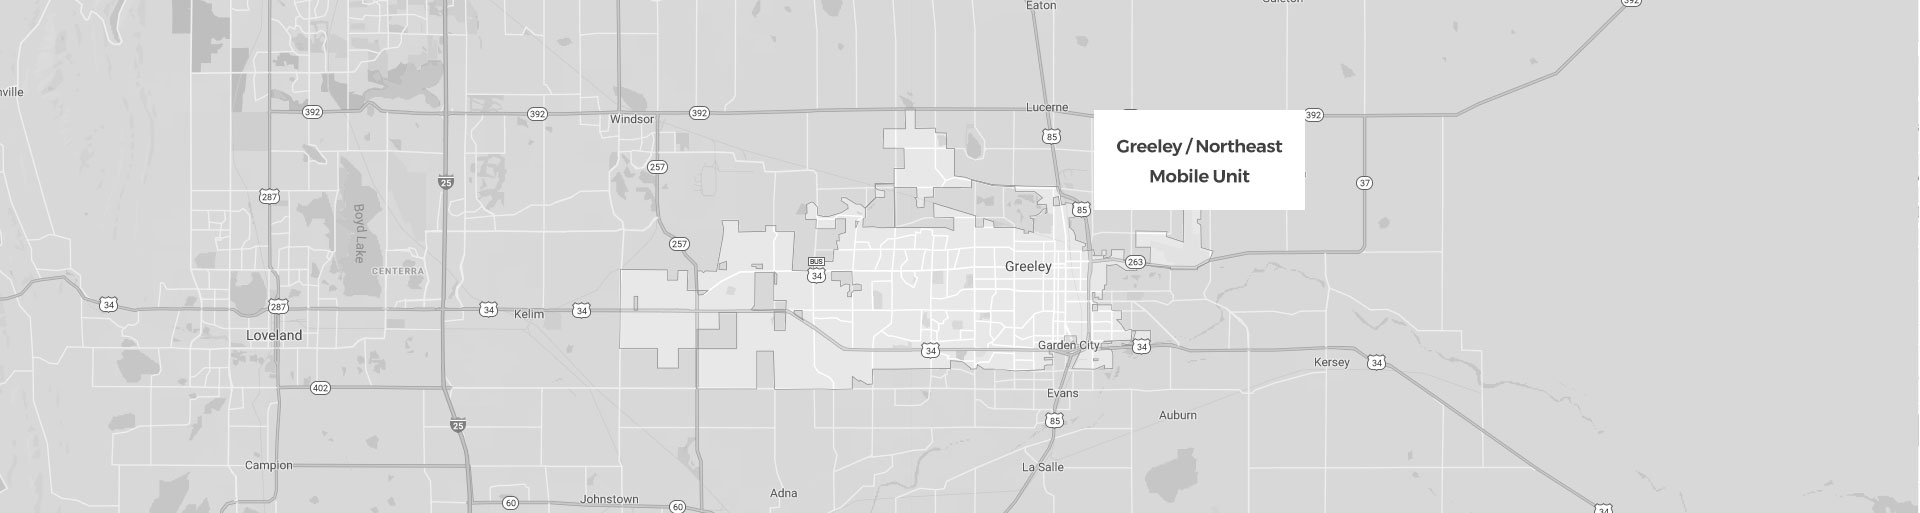 Greeley / Northeast Mobile Unit